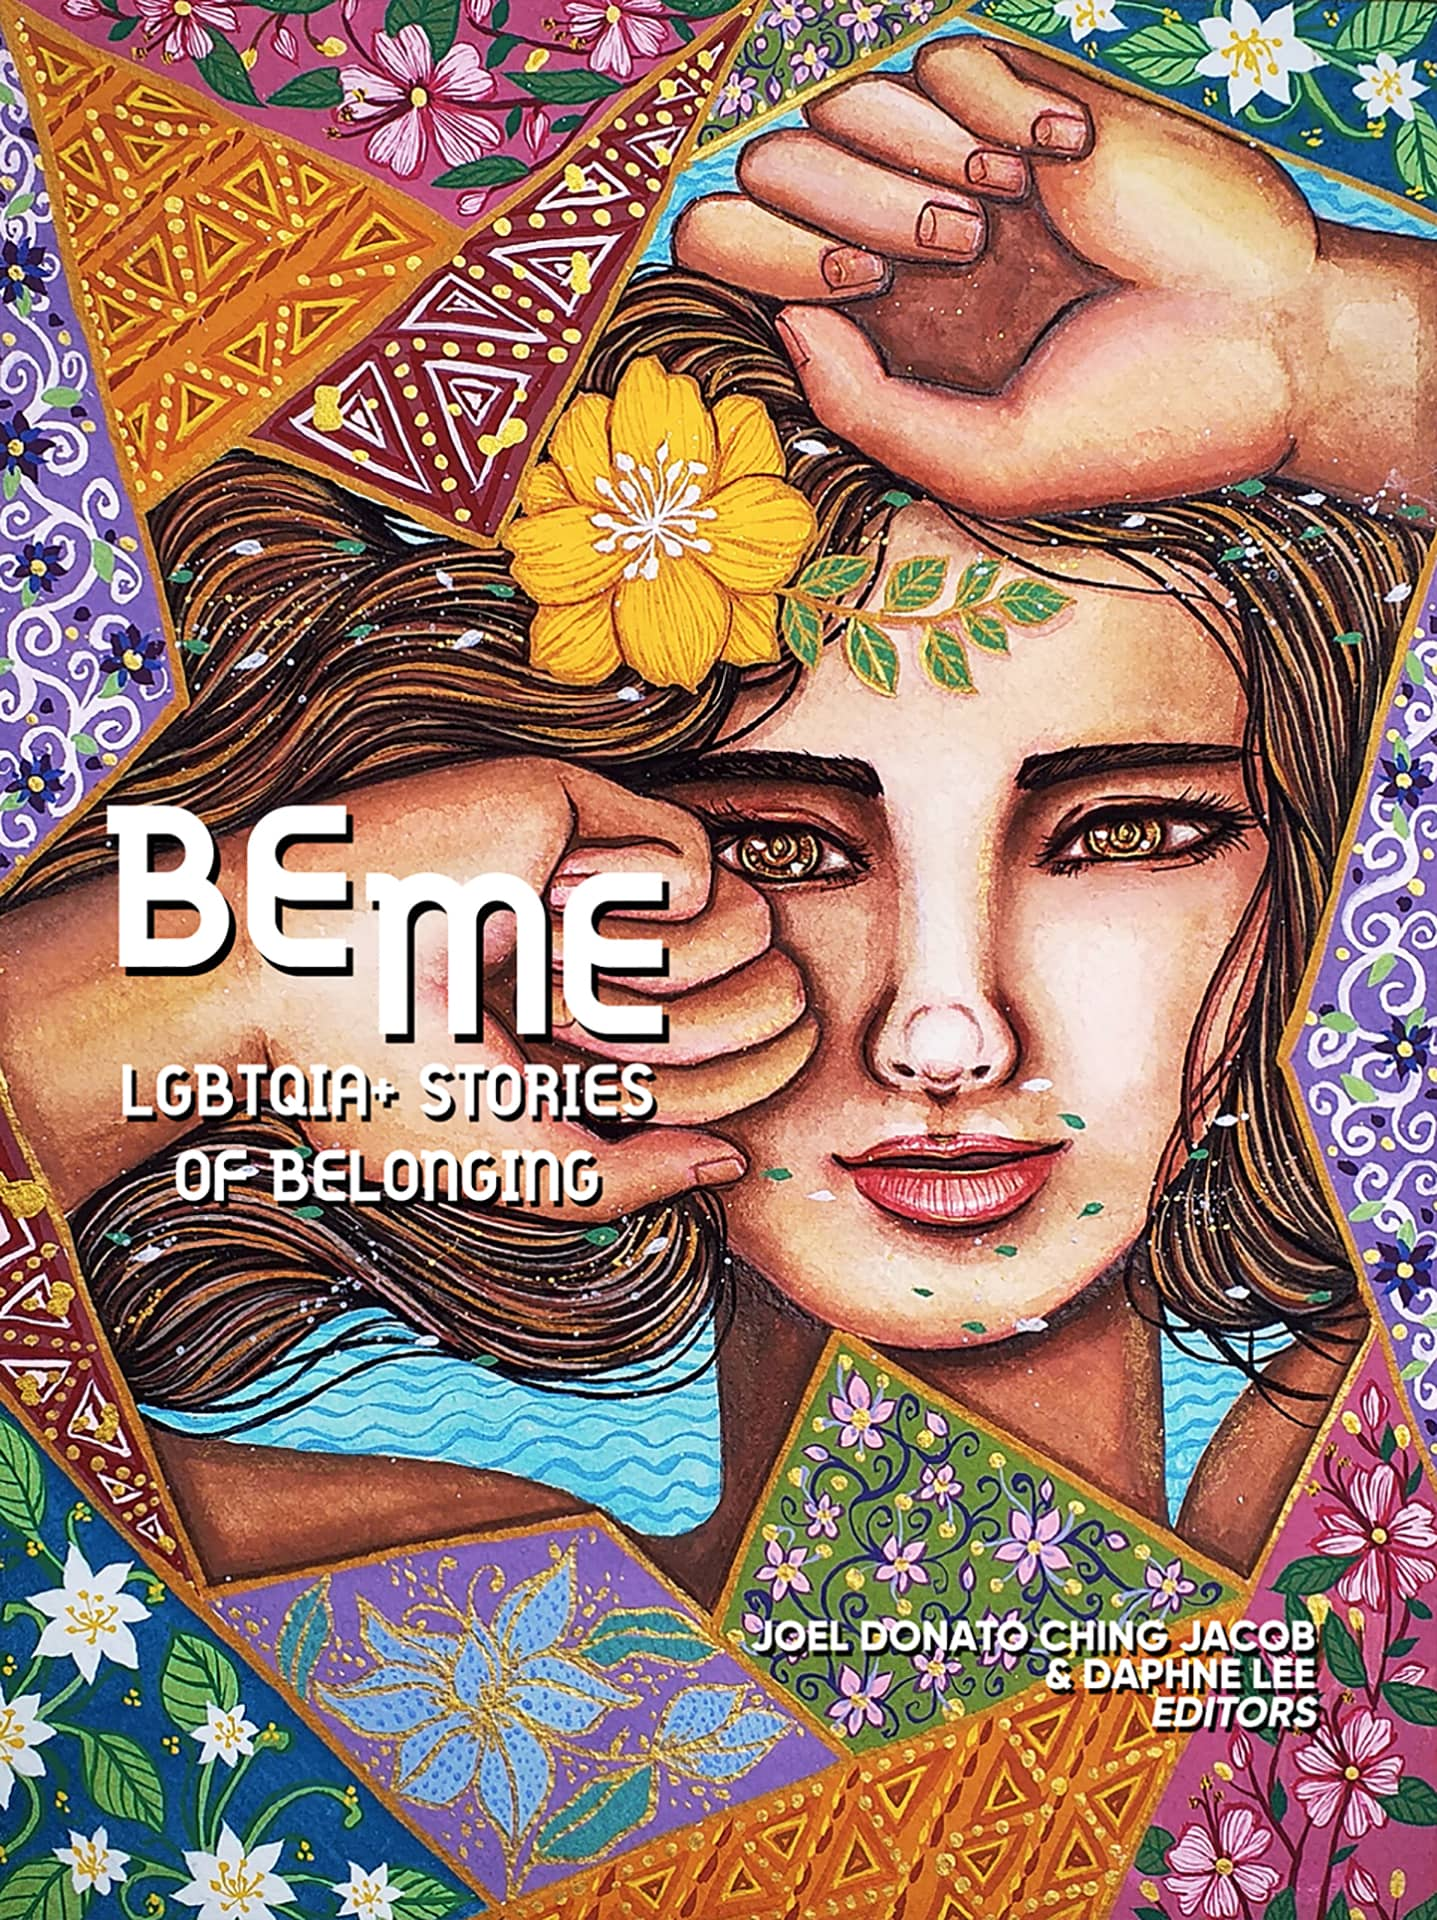 Be me poster